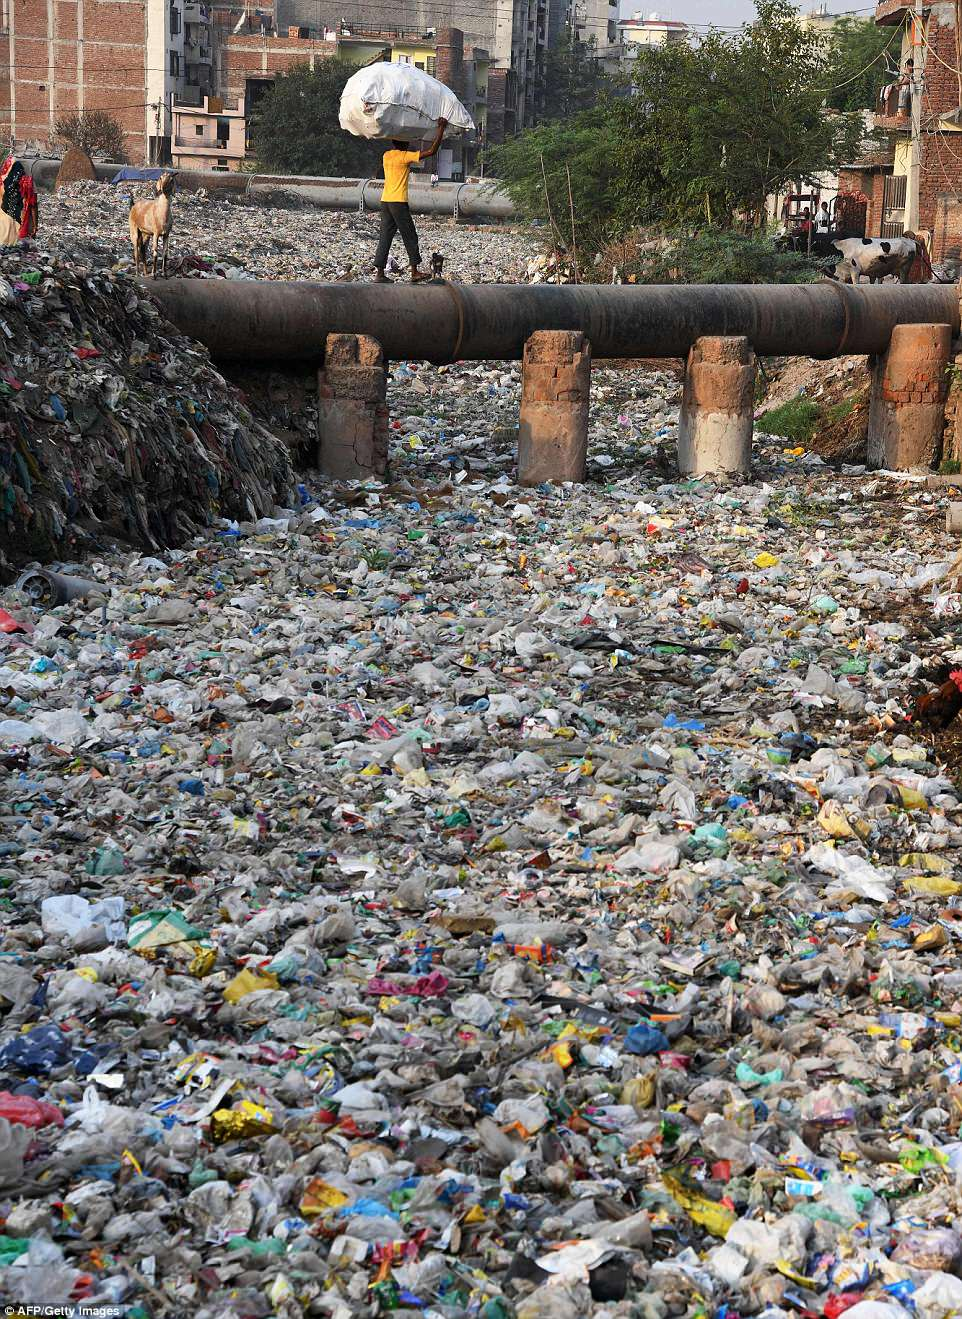 Squalor: A sea of plastic is seen spreading through the New Delhi slum of Taimur Nagar - a symbol of the grime and waste that makes the Indian capital one of the world's most polluted cities